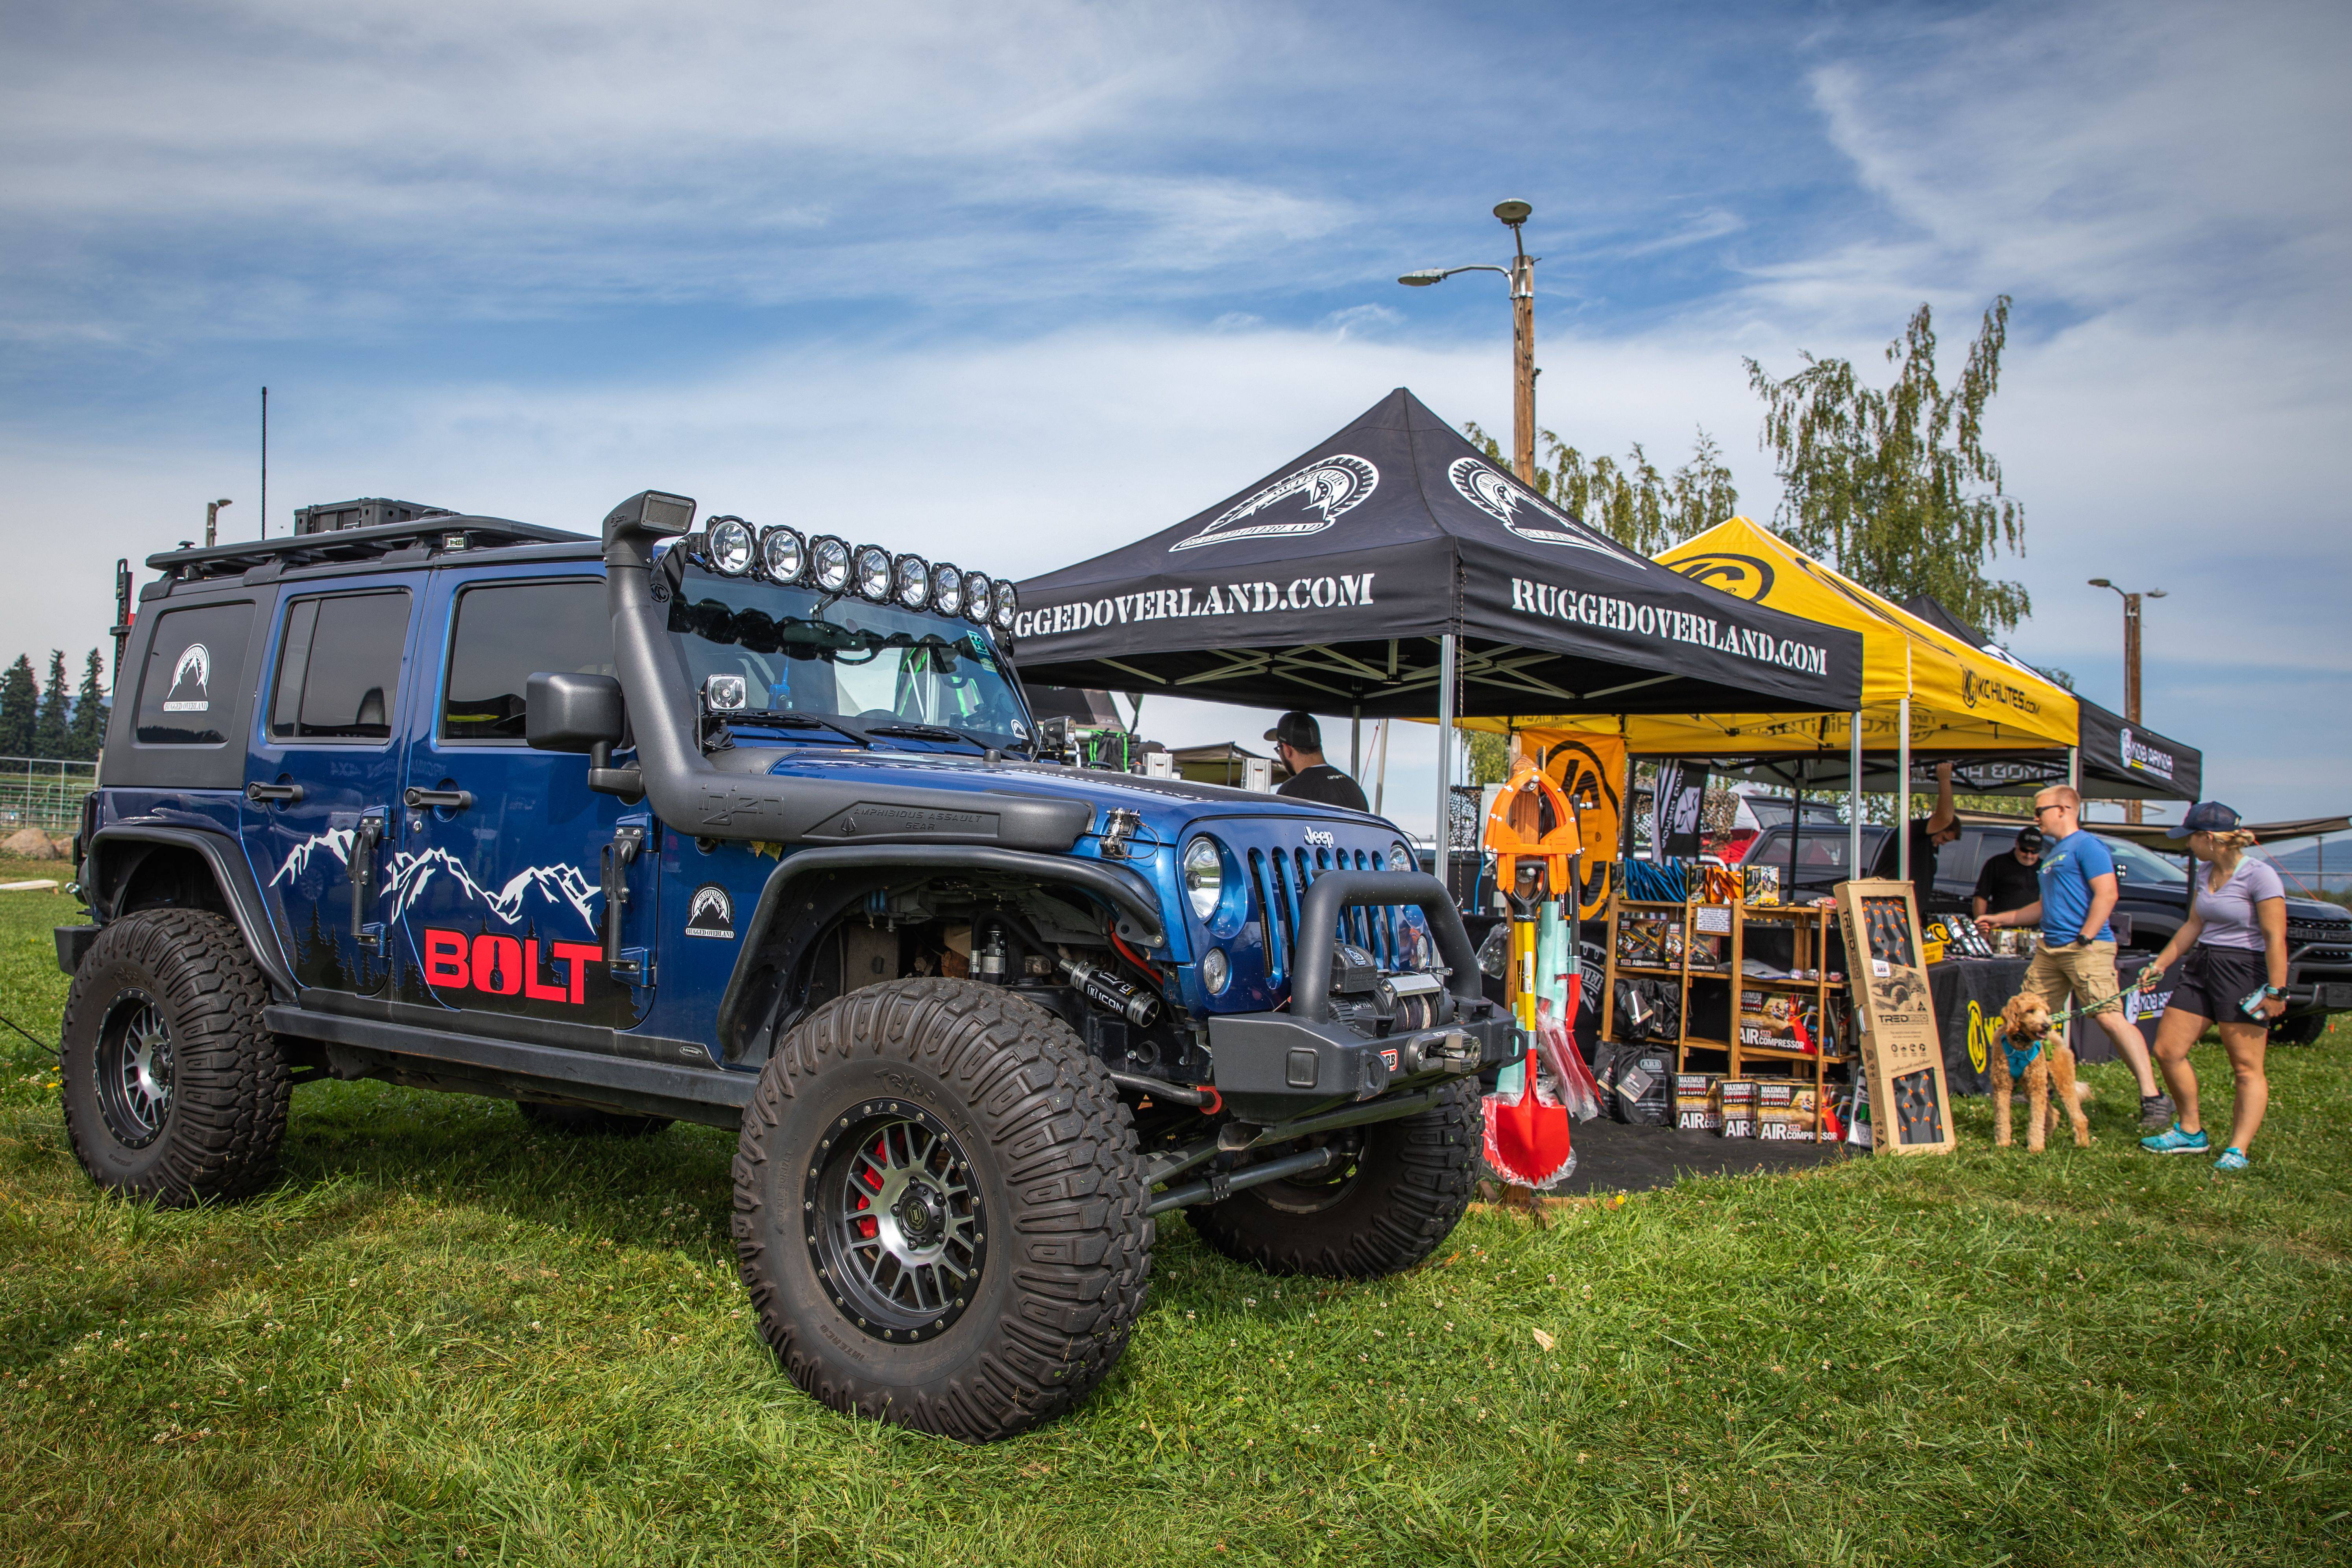 Toyo Tires Trailpass: Rugged Overland.com booth next to blue Jeep Wrangler